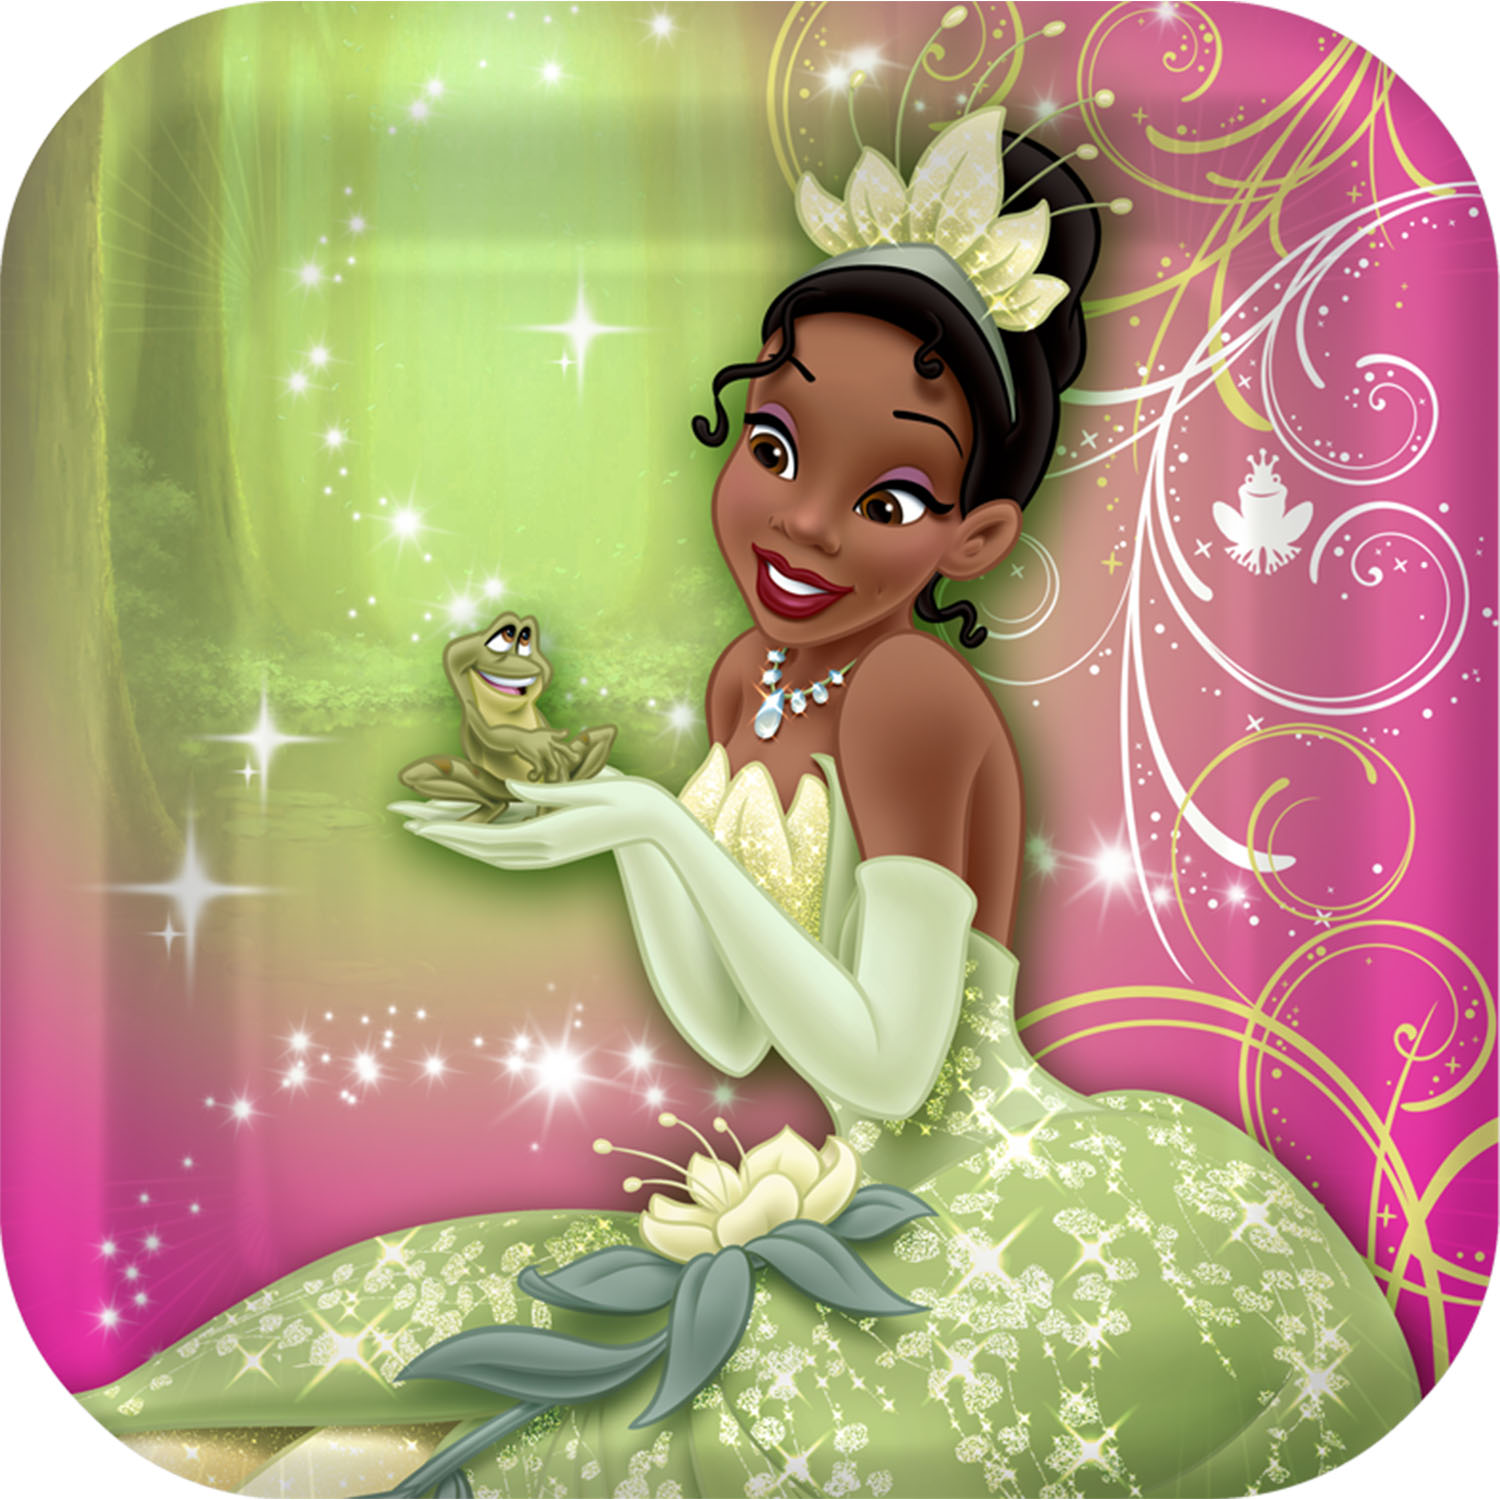 Princess And The Frog Sparkle Party Supplies Dessert